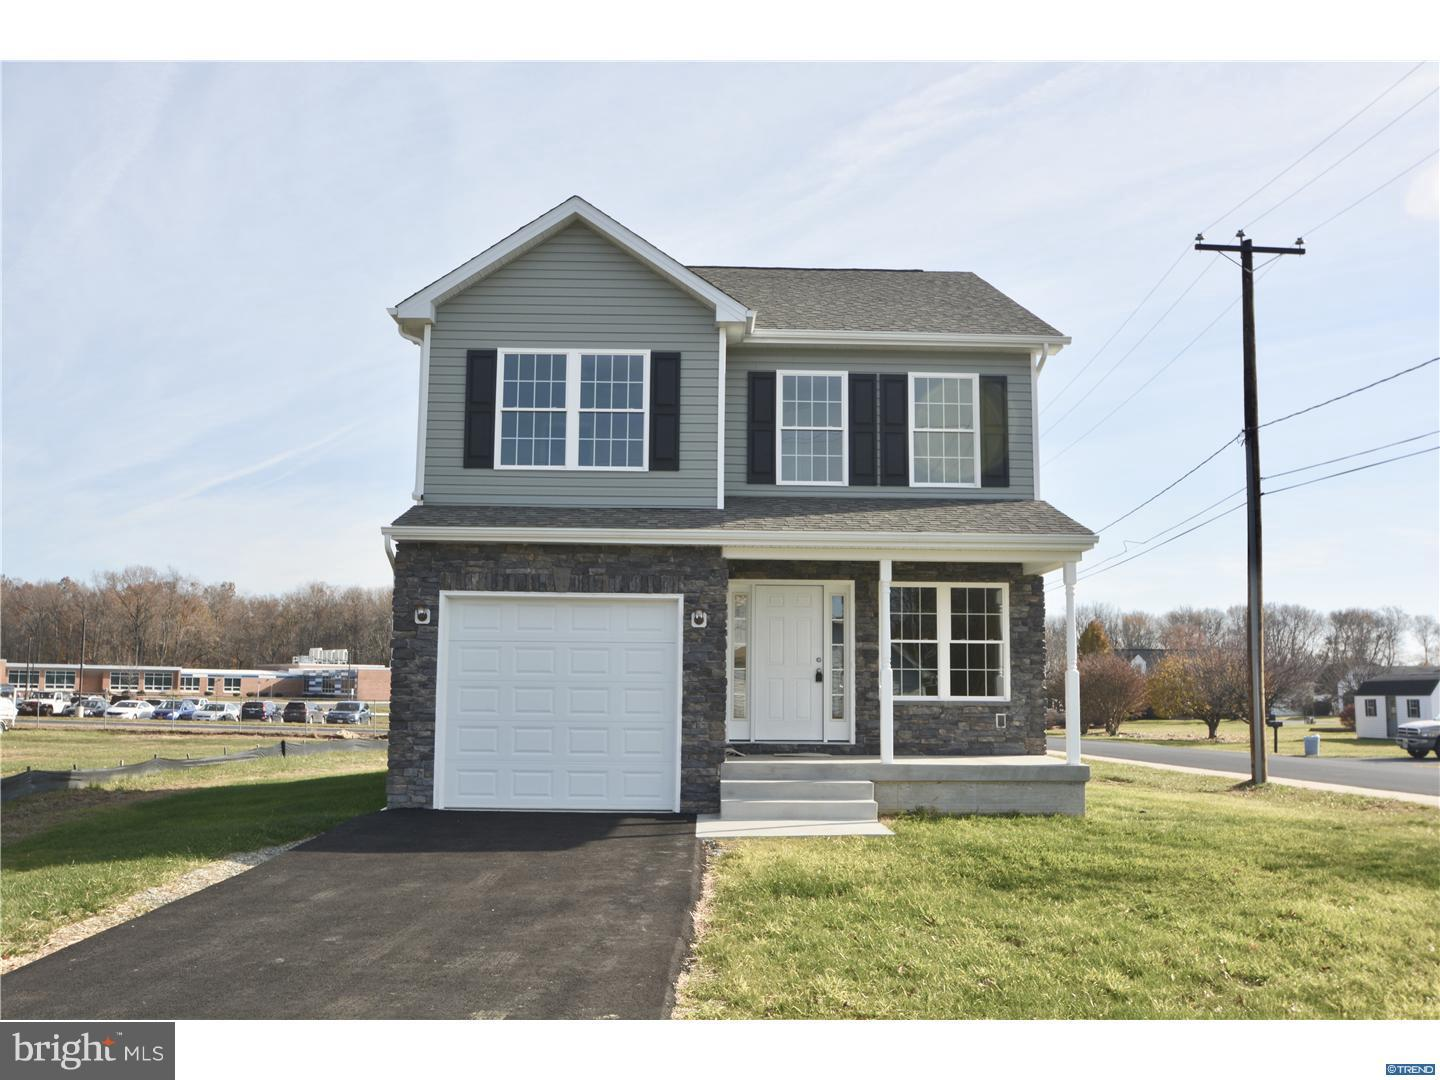 Lot 118 CECIL AVENUE, PERRYVILLE, MD 21903